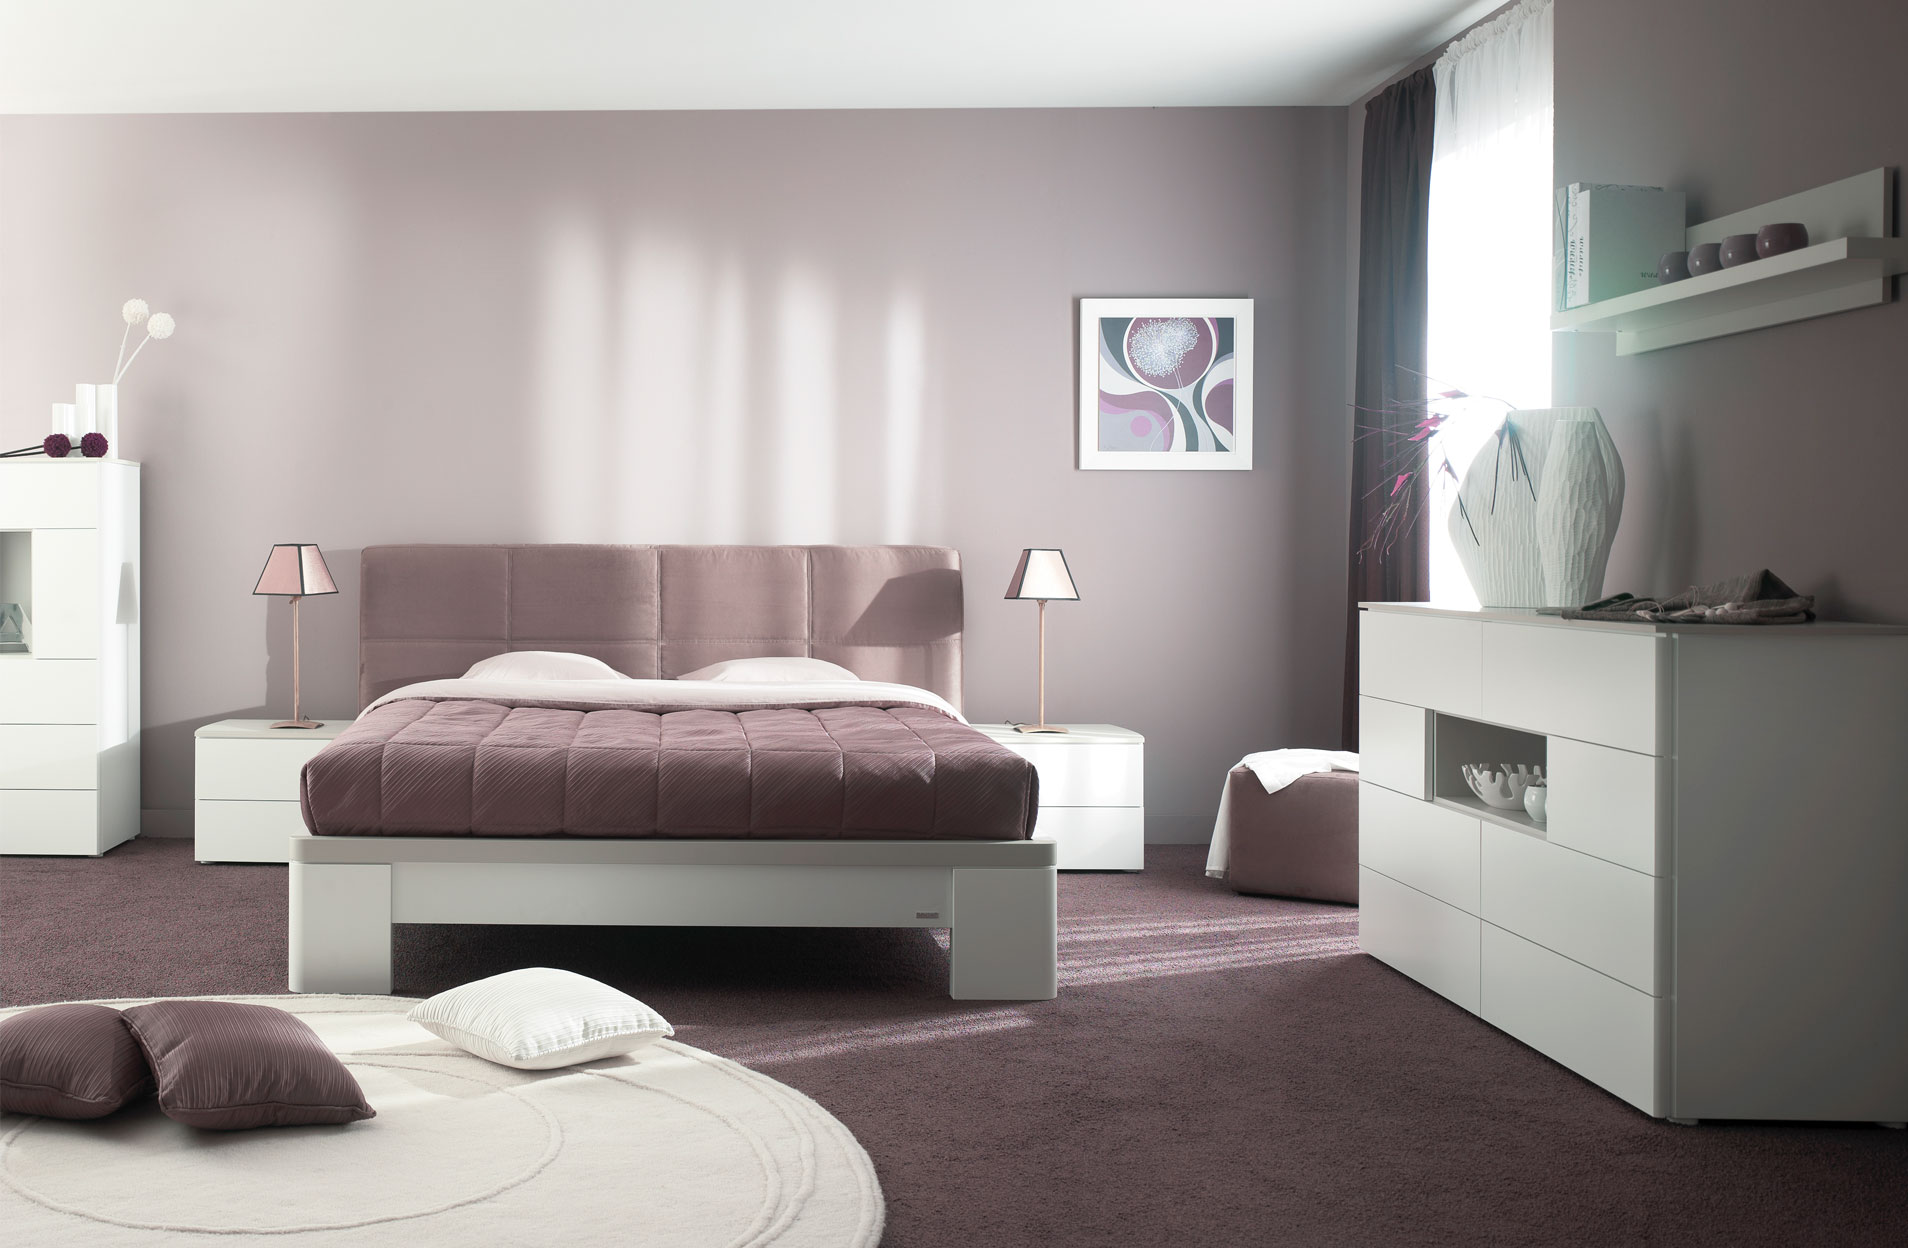 Inspiration d coration de chambre contemporaine gautier opalia for Chambre a coucher adulte contemporaine